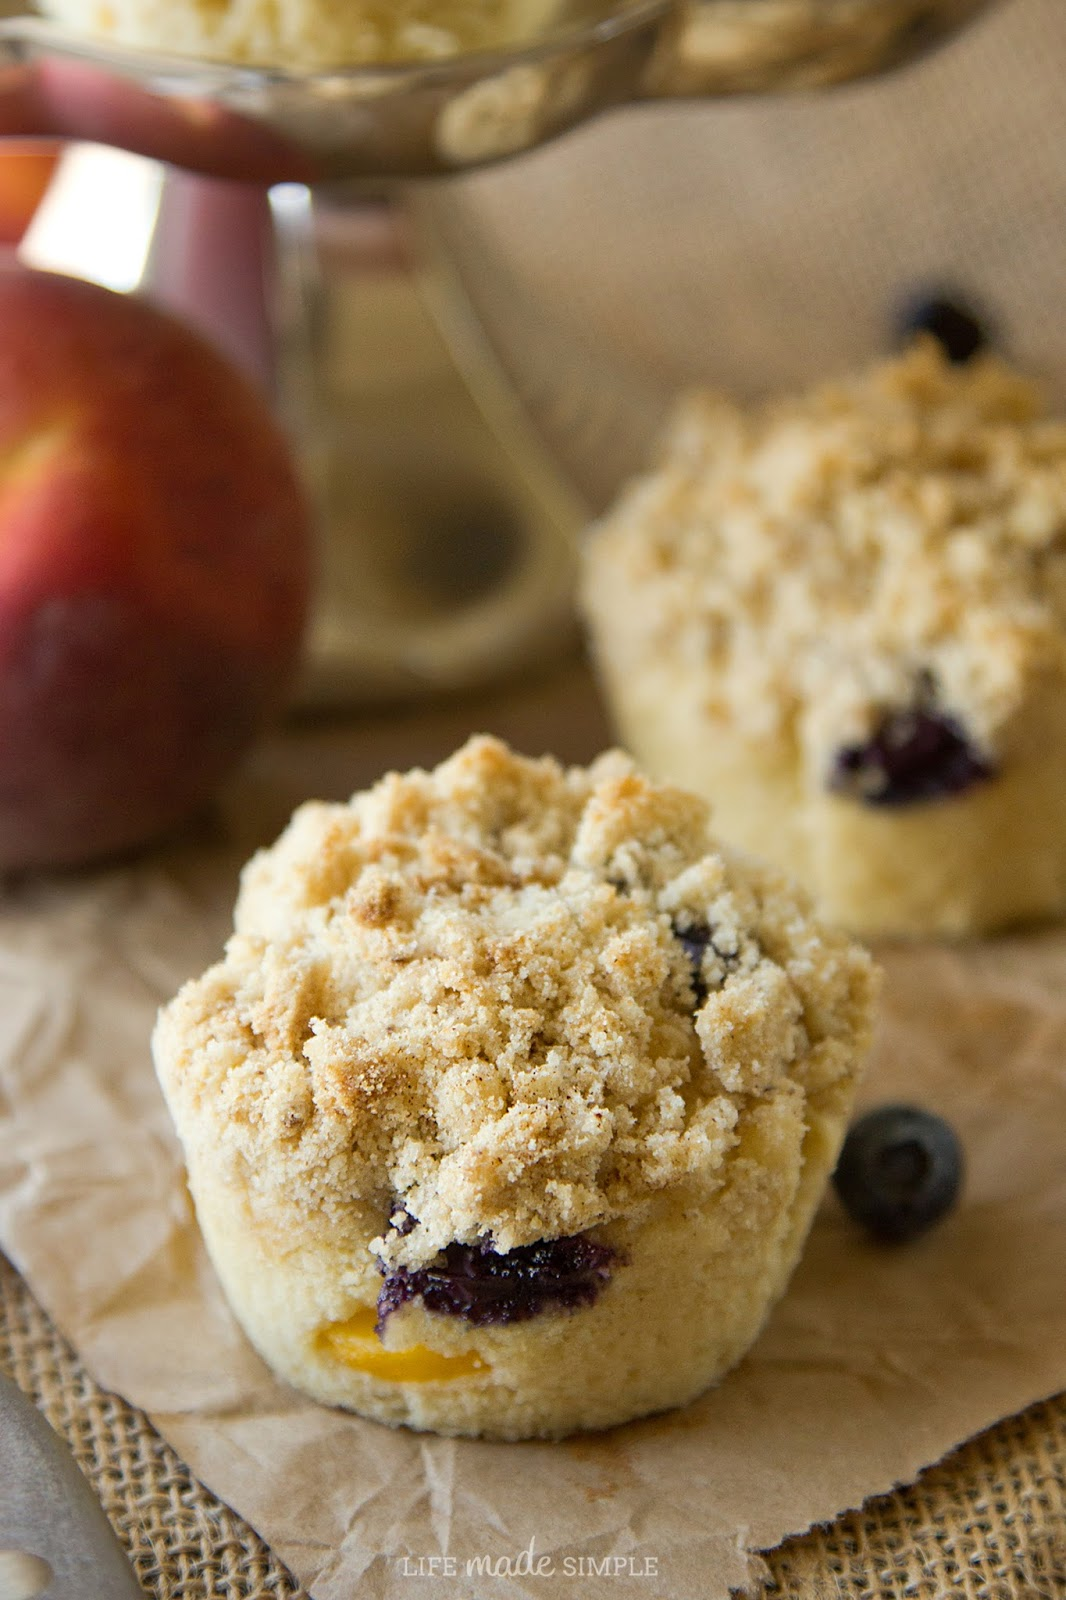 Life Made Simple: Blueberry Peach Coffee Cake Muffins